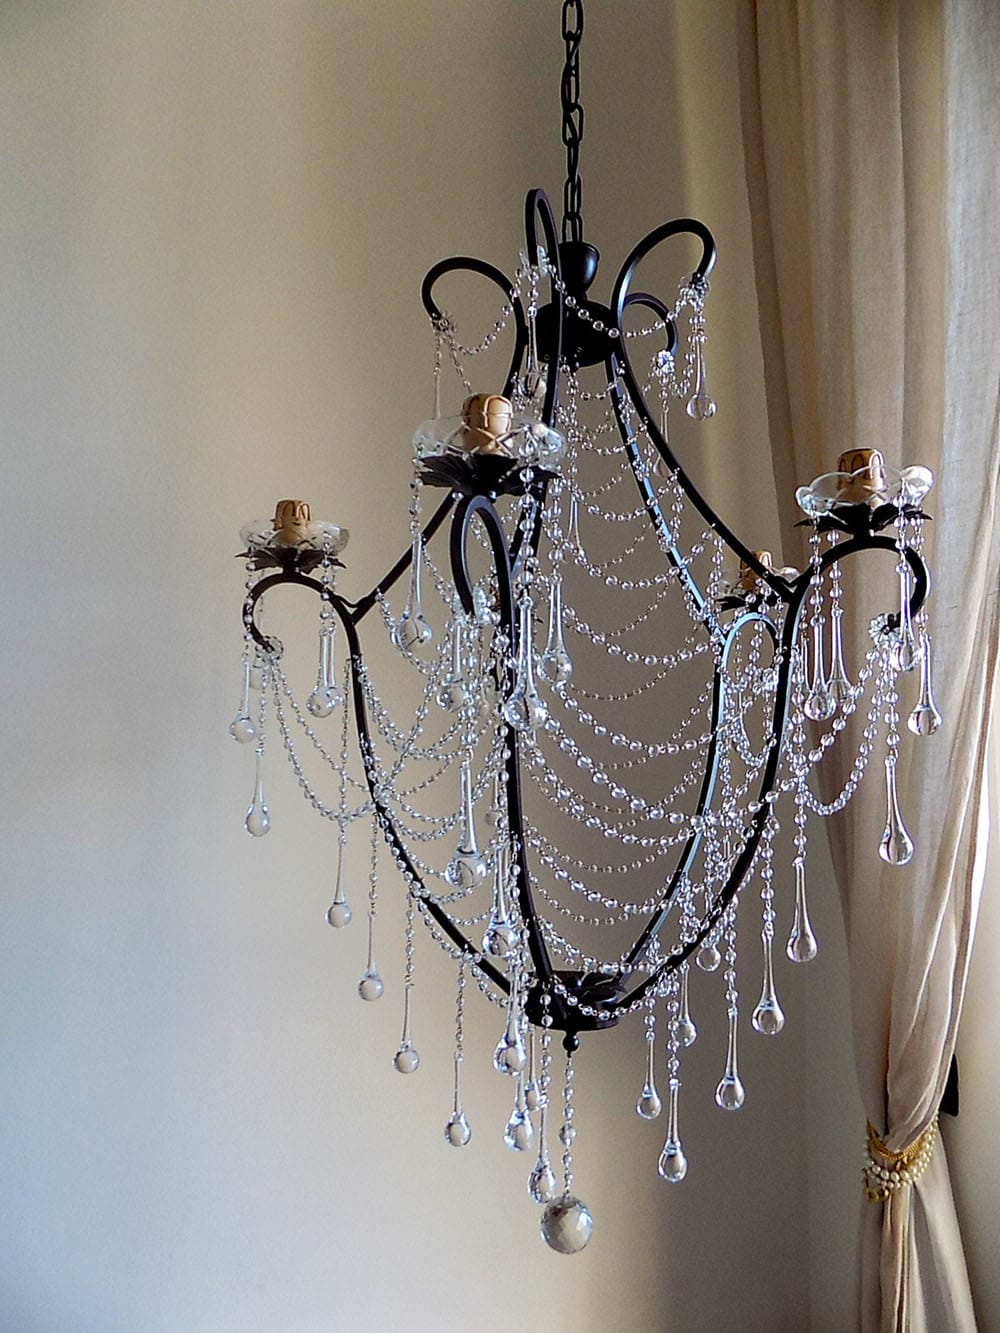 Birdcage crystal chandelier with murano drops lorella dia birdcage crystal chandelier clear murano glass crystals drops and chains aloadofball Gallery